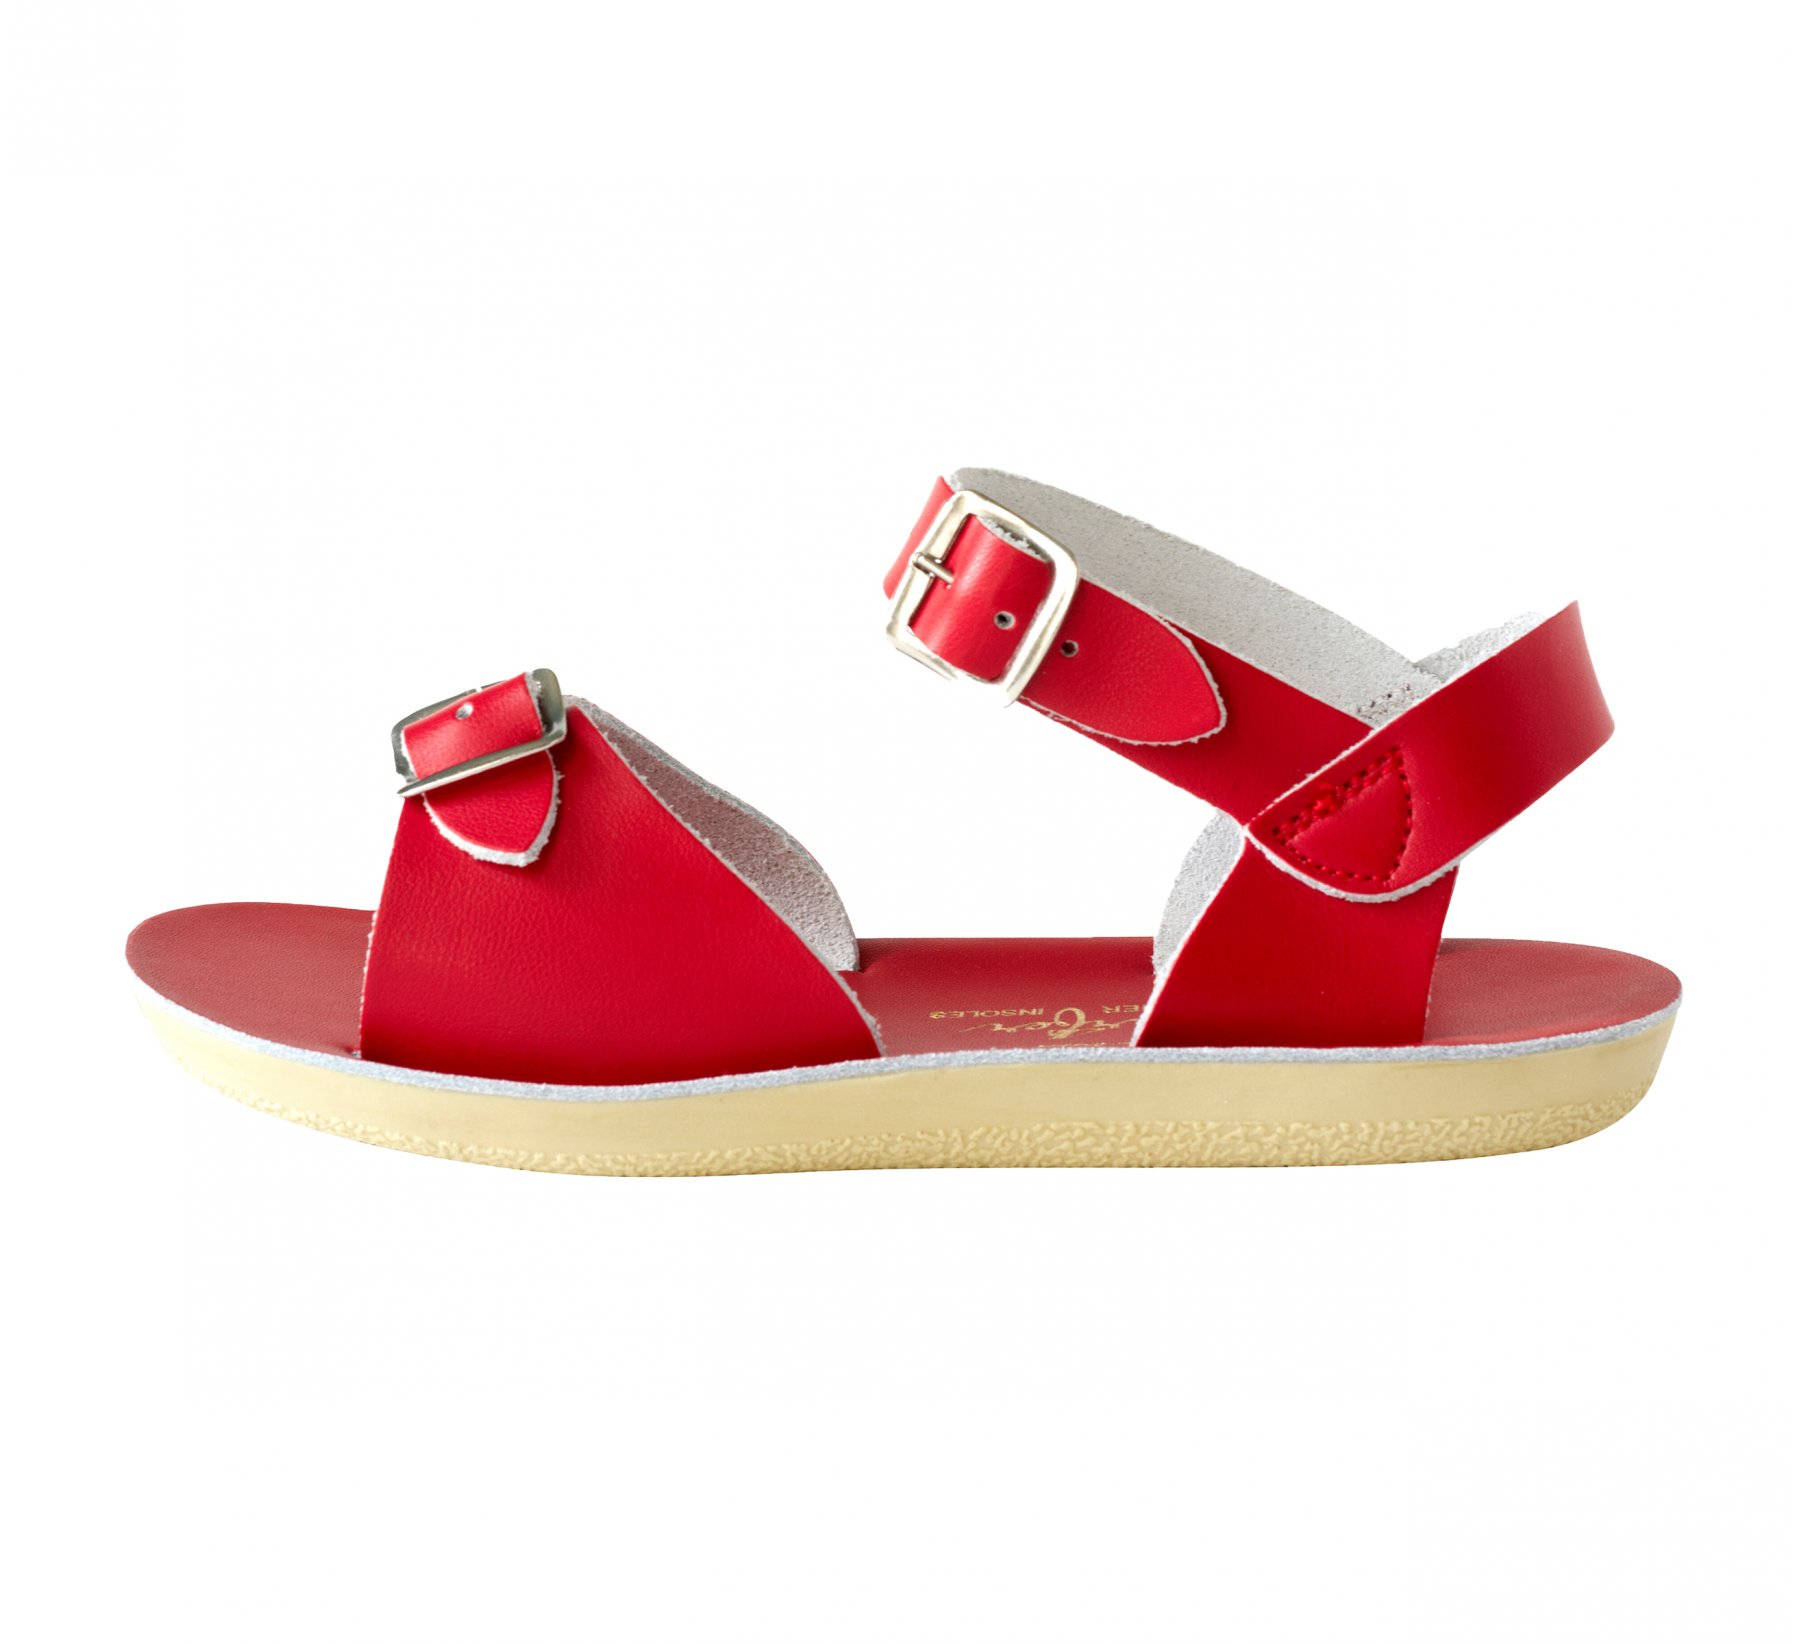 Surfer Rouge - Salt Water Sandals